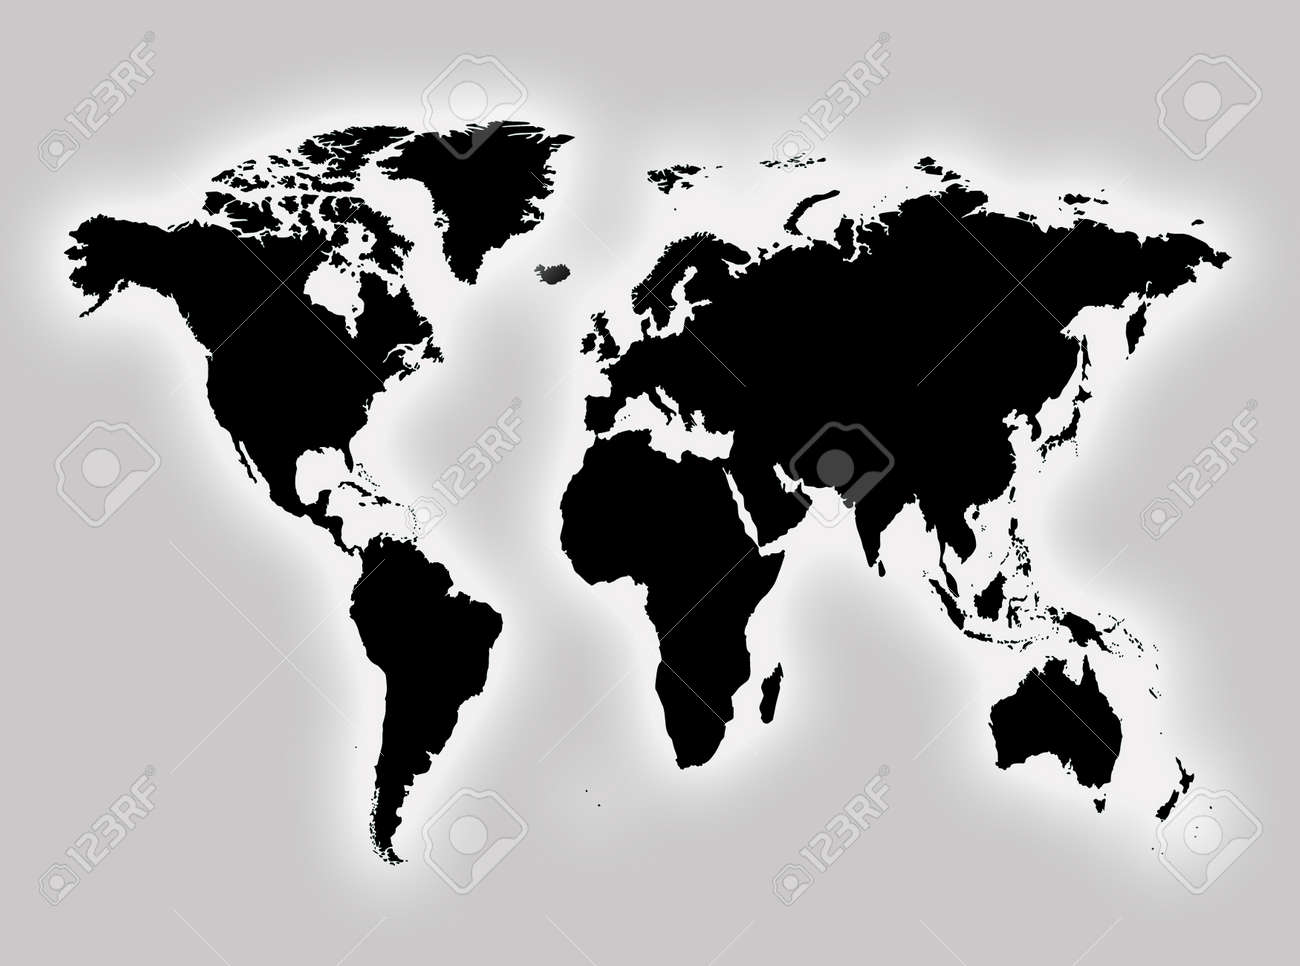 World Map To Represent Countries And Continents Stock Photo, Picture ...